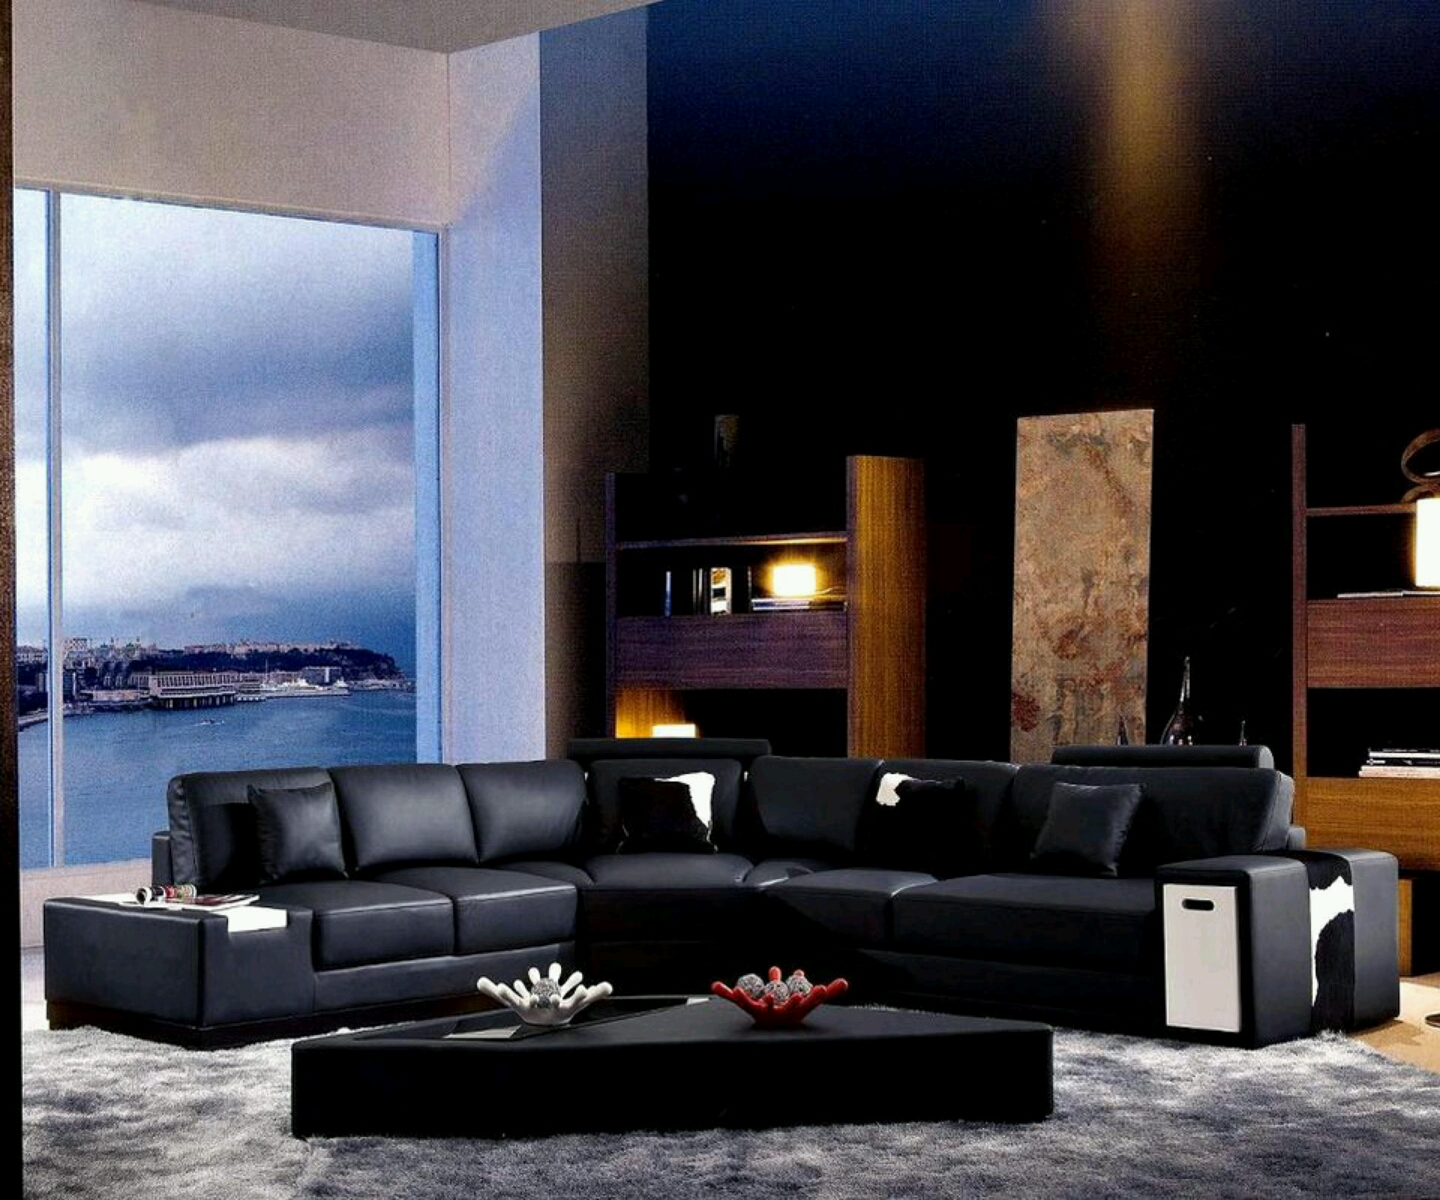 New home designs latest luxury living rooms interior for Modern drawing room ideas